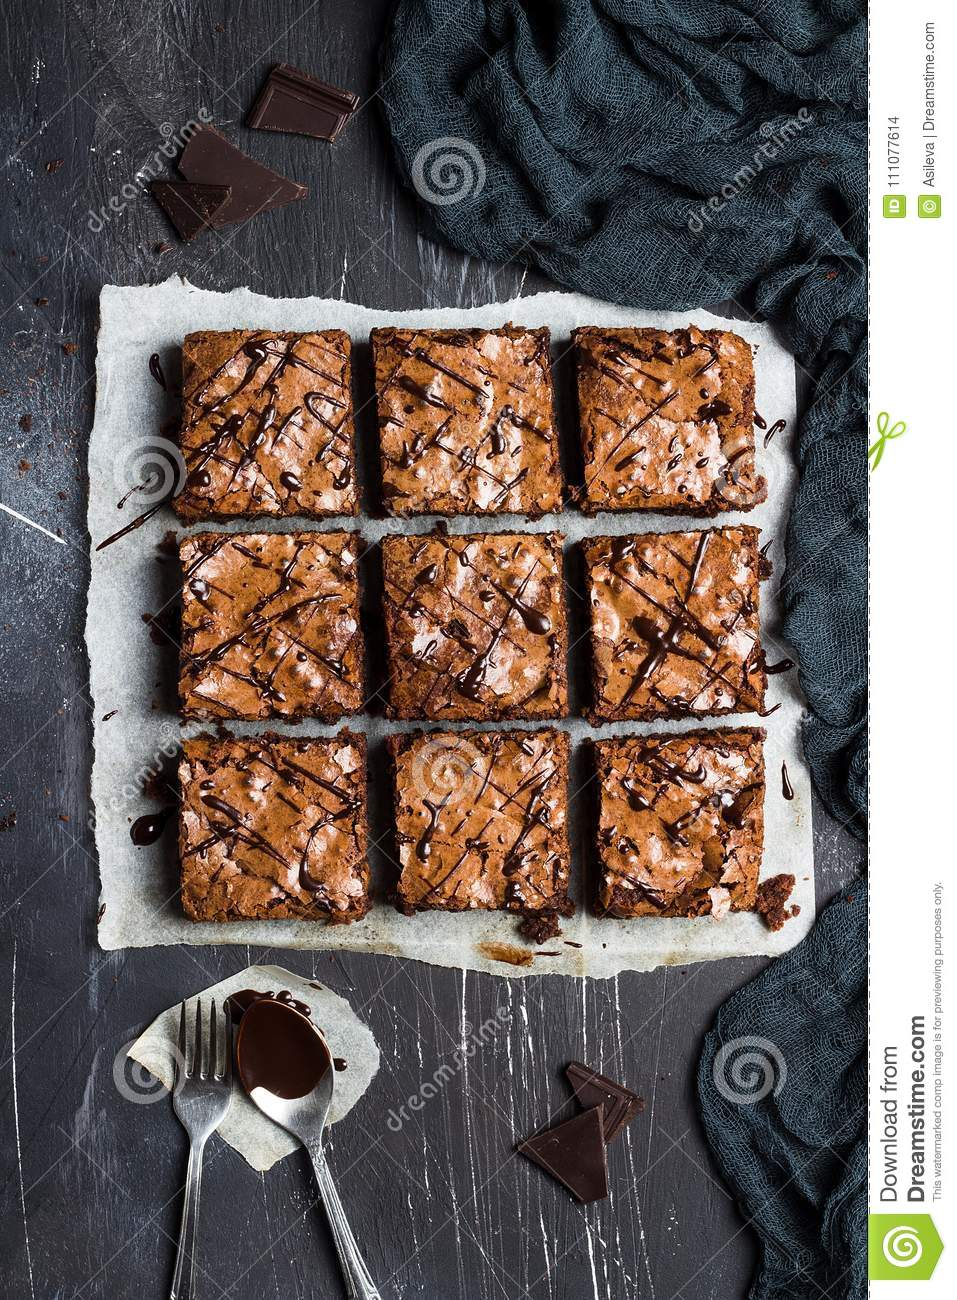 Chocolate brownie cake piece pie homemade pastries sweet cooking